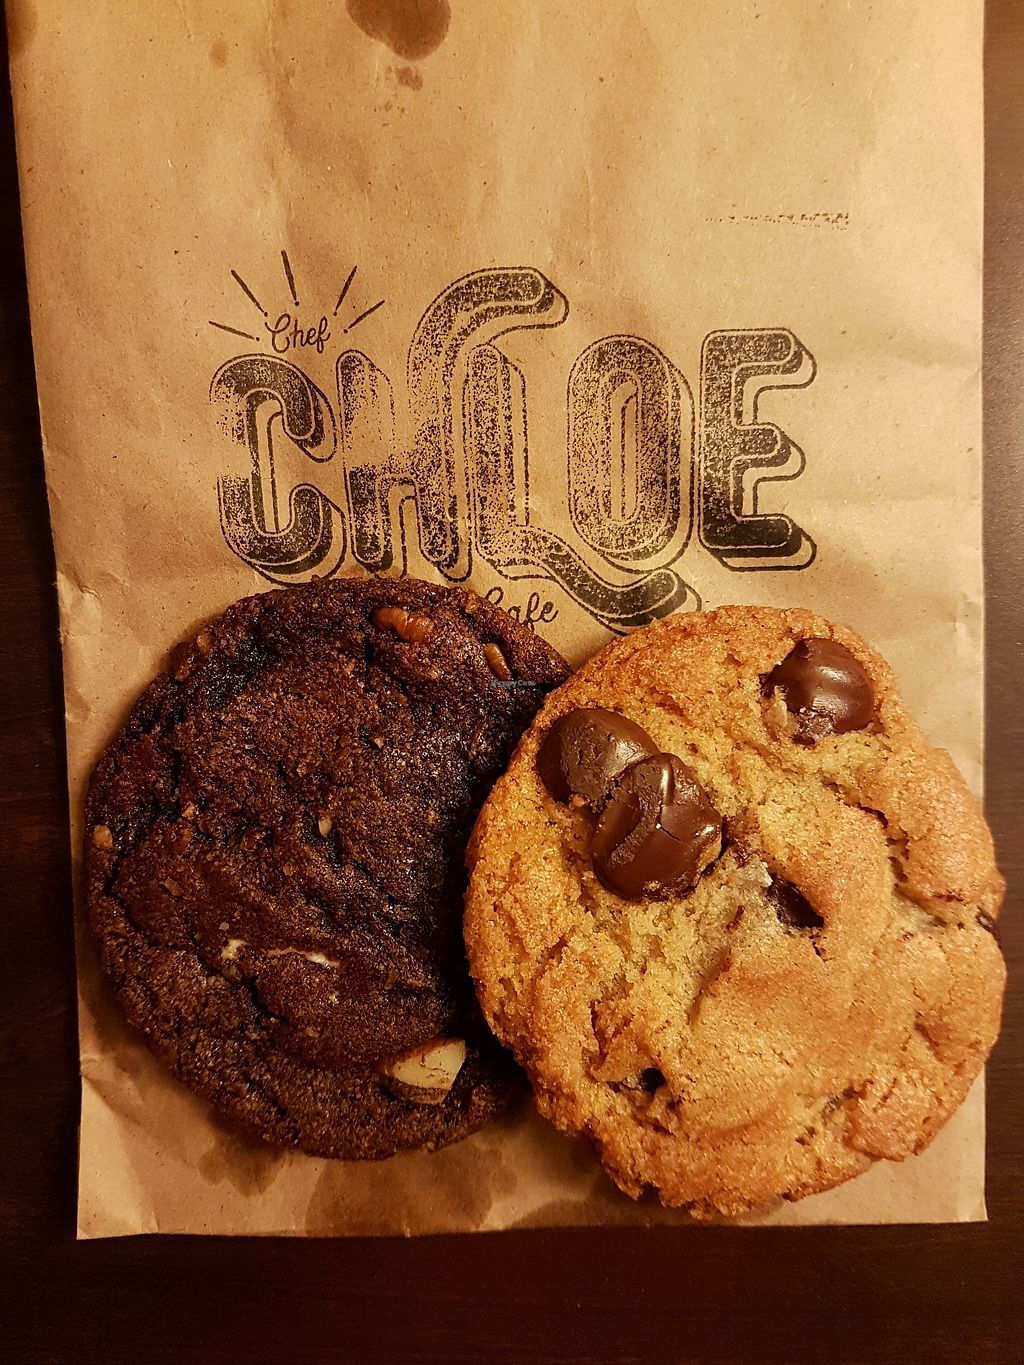 """Photo of Chef Chloe and the Vegan Cafe  by <a href=""""/members/profile/happy_globetrotter"""">happy_globetrotter</a> <br/>yummiest vegan cookies <br/> March 2, 2018  - <a href='/contact/abuse/image/113080/365793'>Report</a>"""